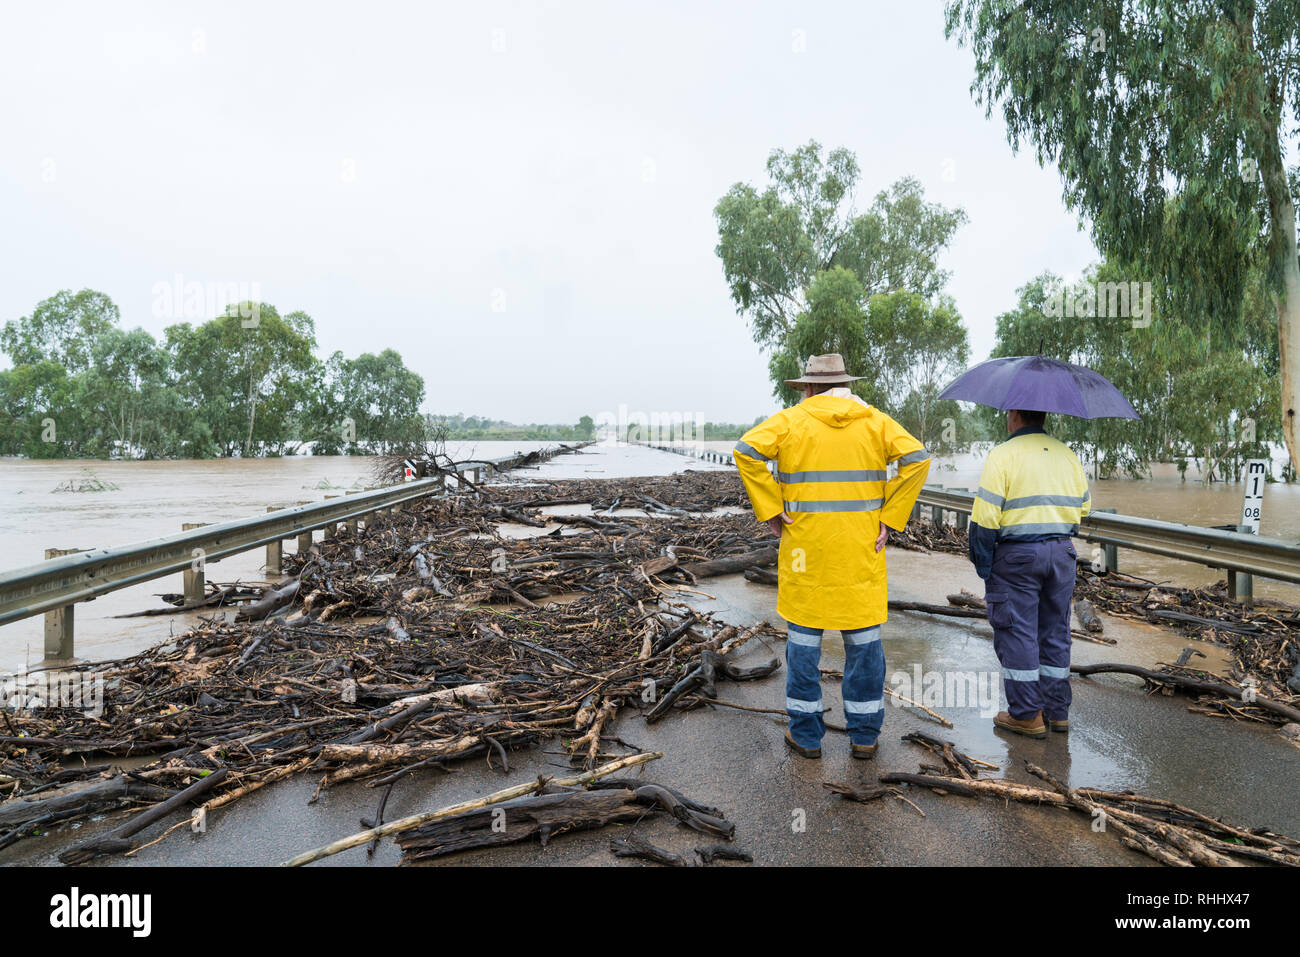 burdekin-river-macrossan-north-queensland-australia-february-3-2019-workers-wait-for-flood-water-to-recede-before-they-can-clear-the-road-to-let-traffic-through-burdekin-bridge-macrossan-north-queensland-RHHX47.jpg